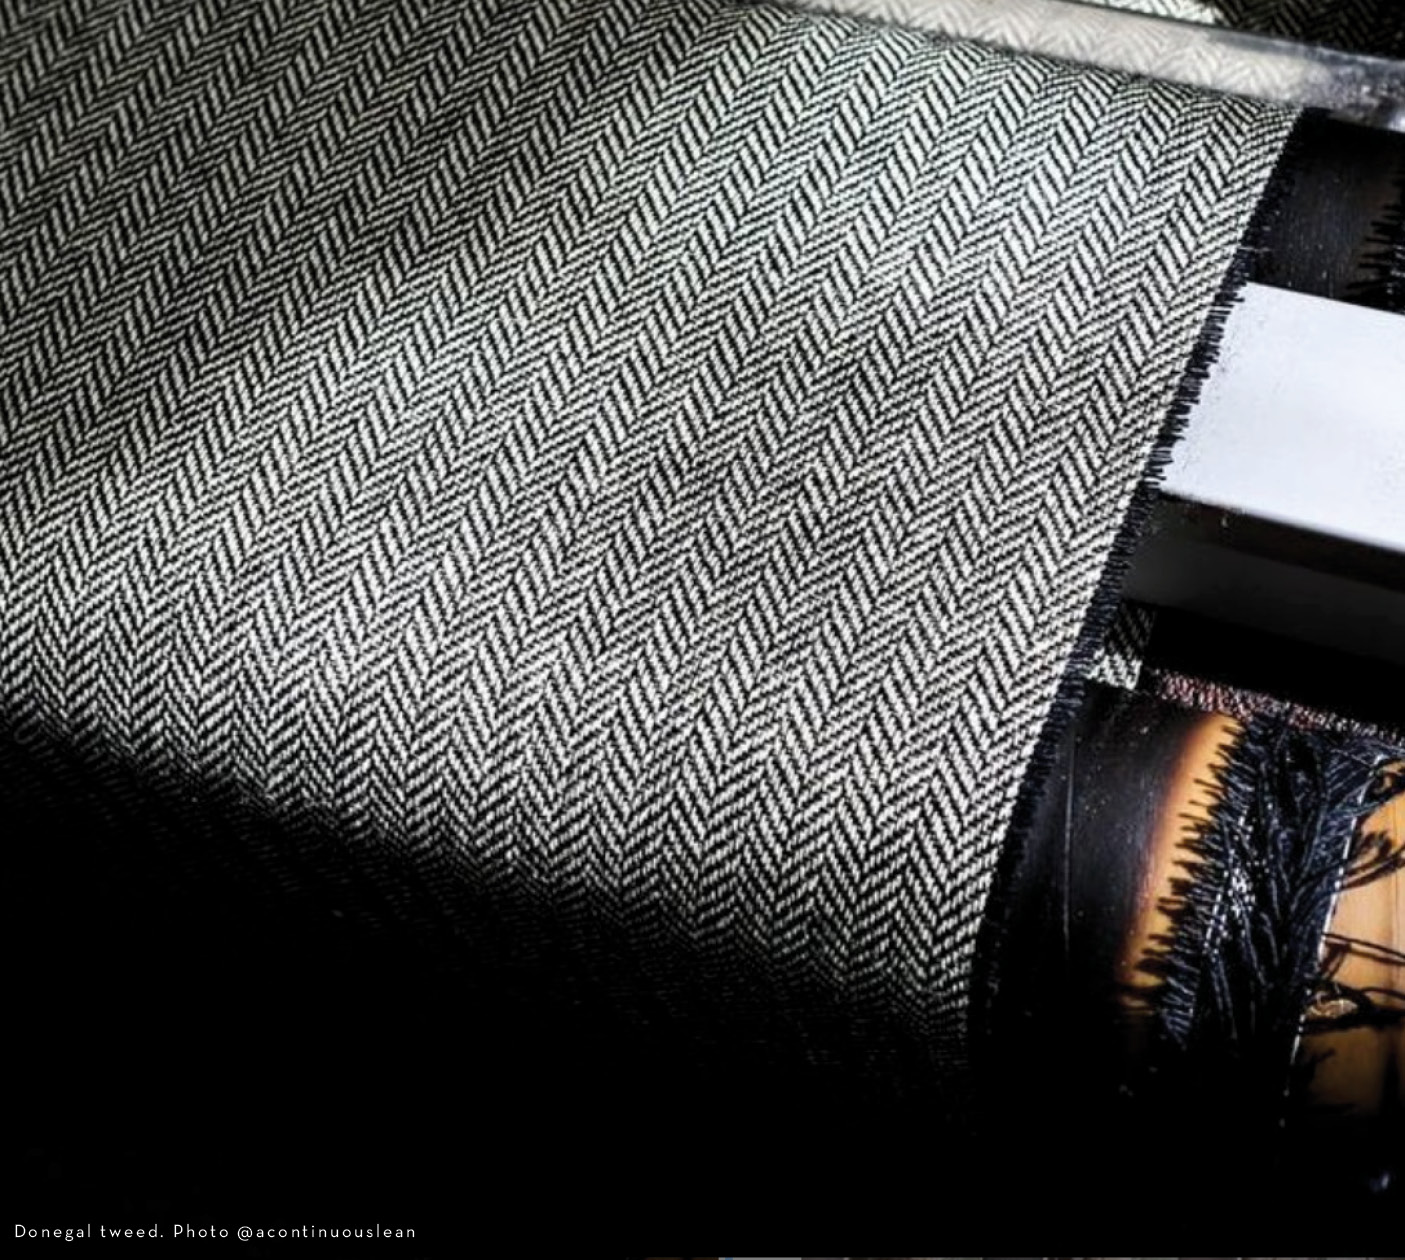 Heritage Fabrics - Tweed from Magee of Donegal